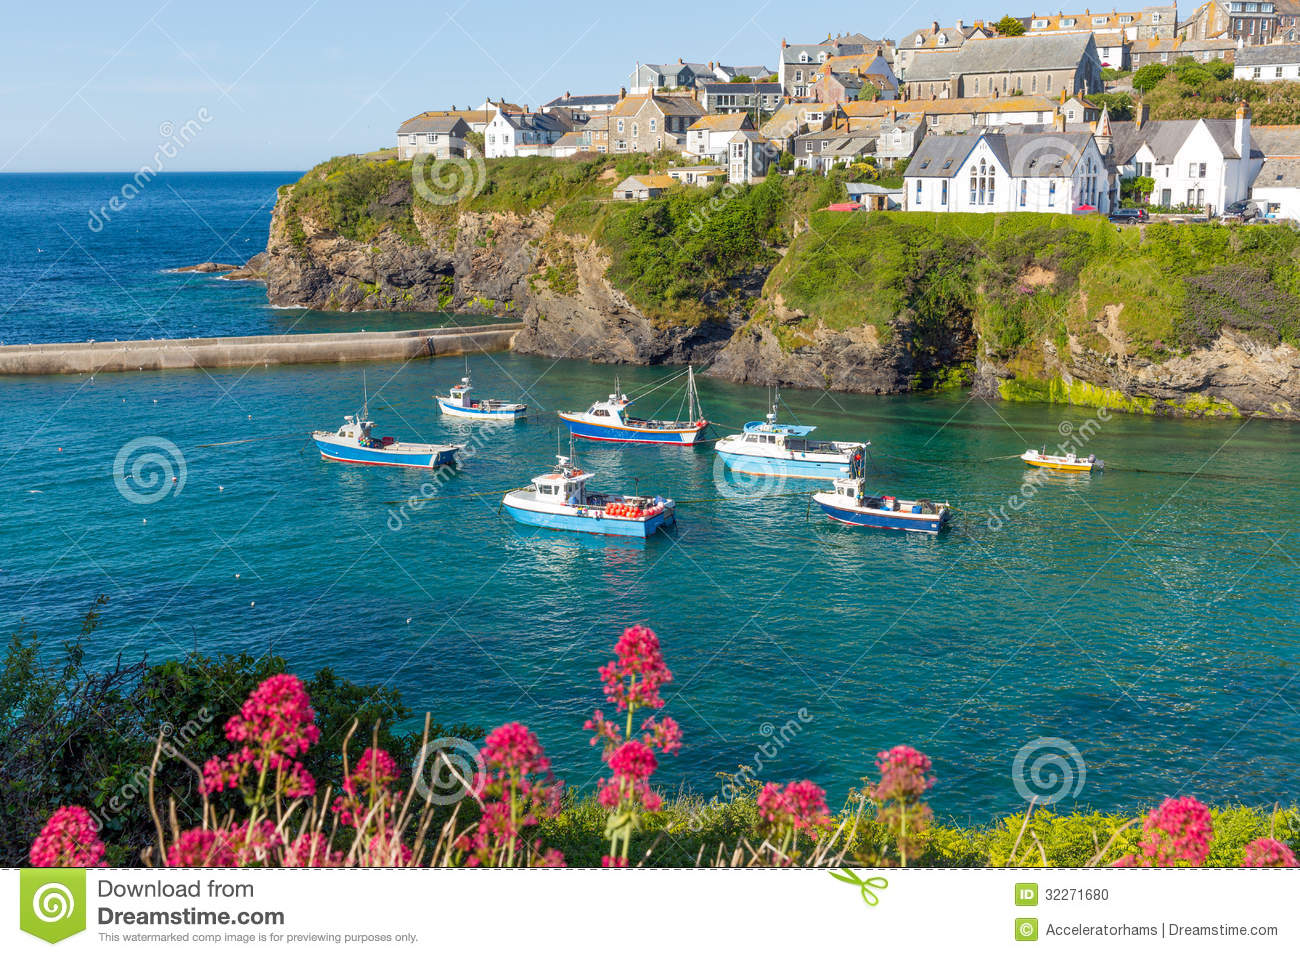 Stock Photo Boats Port Isaac Harbour Cornwall England Uk North Coast Beautiful Sunny Day Image32271680 on vacation house plans